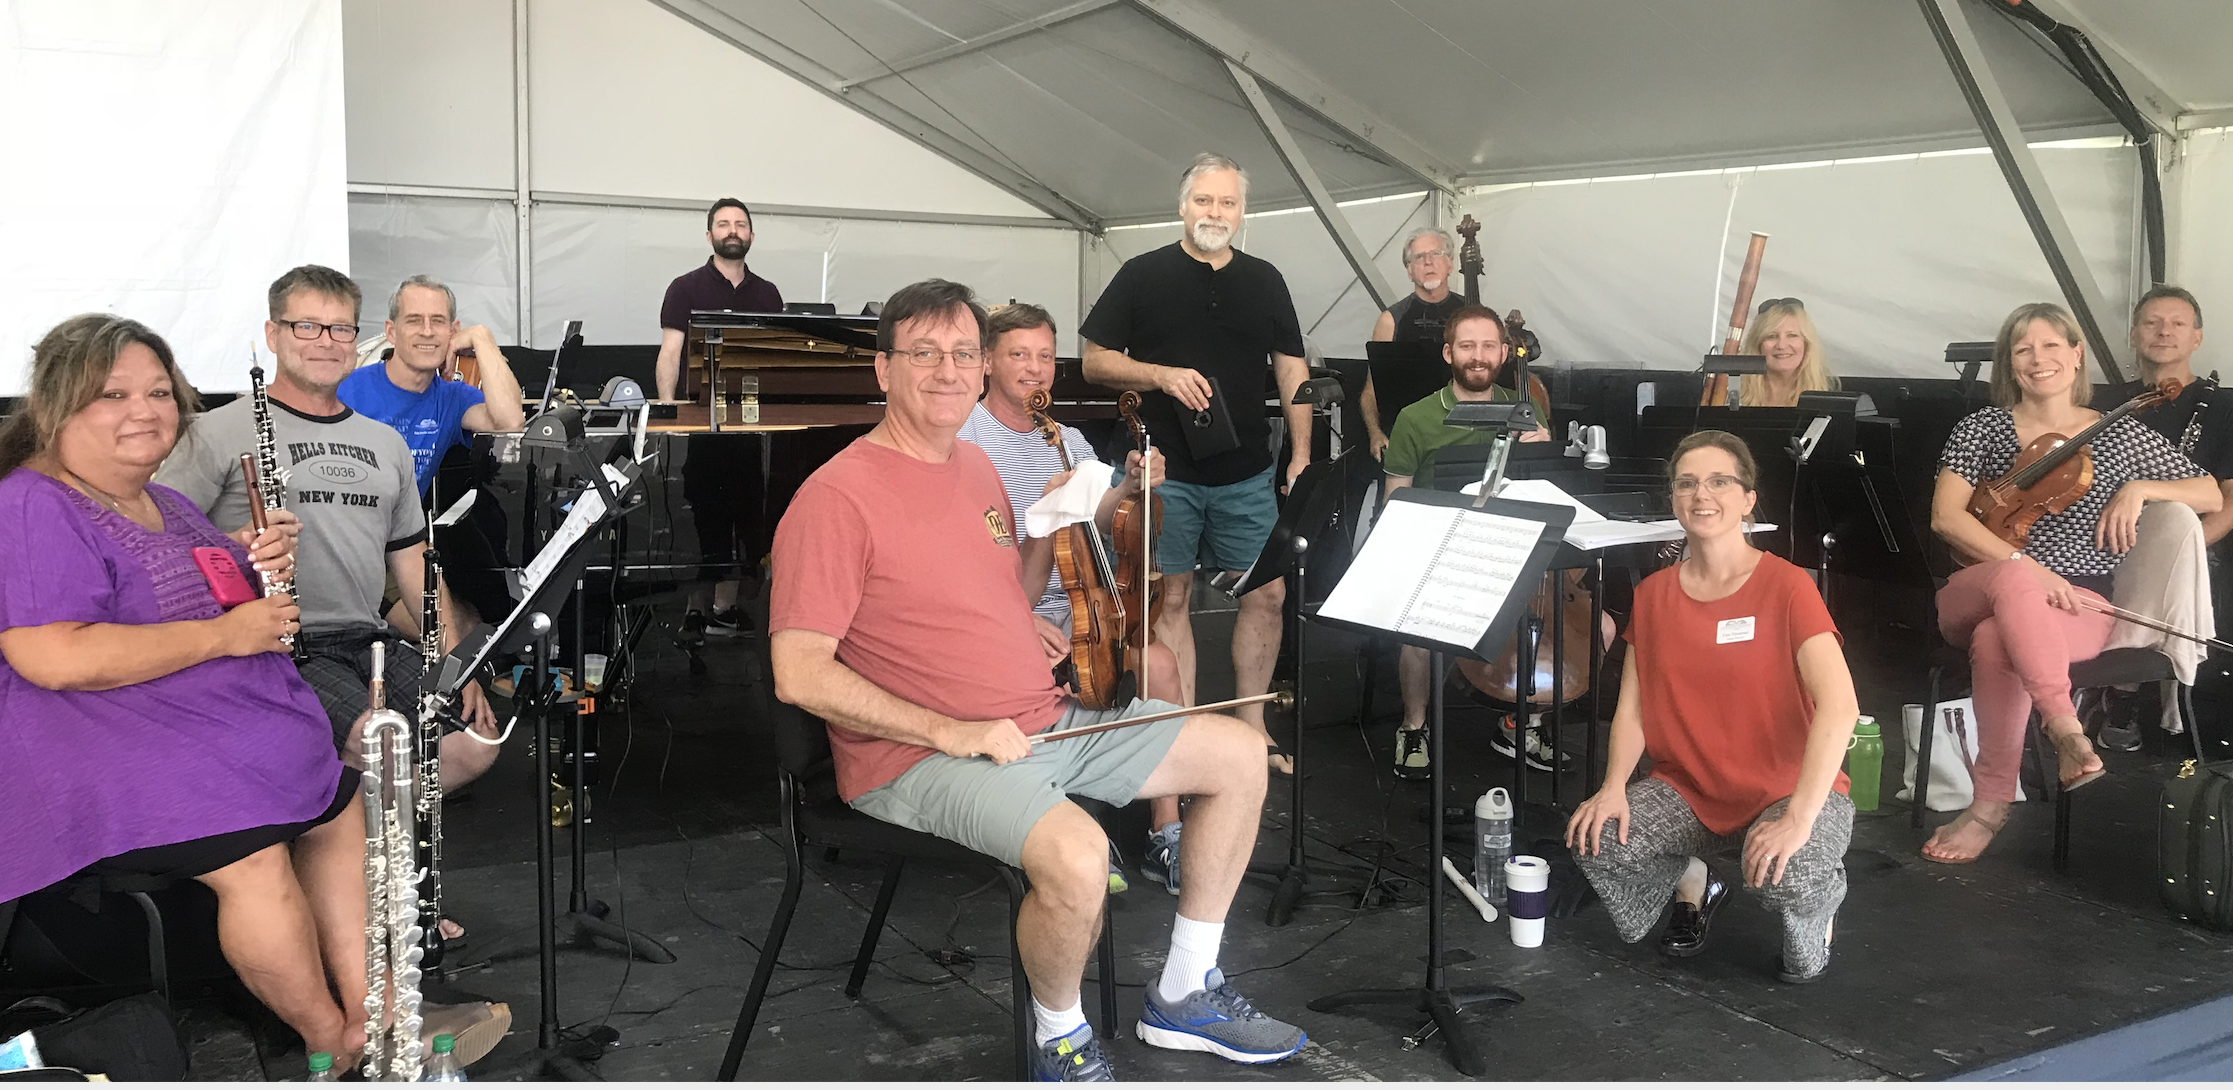 """The """"Tramp Orchestra"""" with composer and conductor Erin Freeman rehearsing for the premiere of """"Chaplin Symphony"""" synched to Chaplin's film """"City Lights."""""""